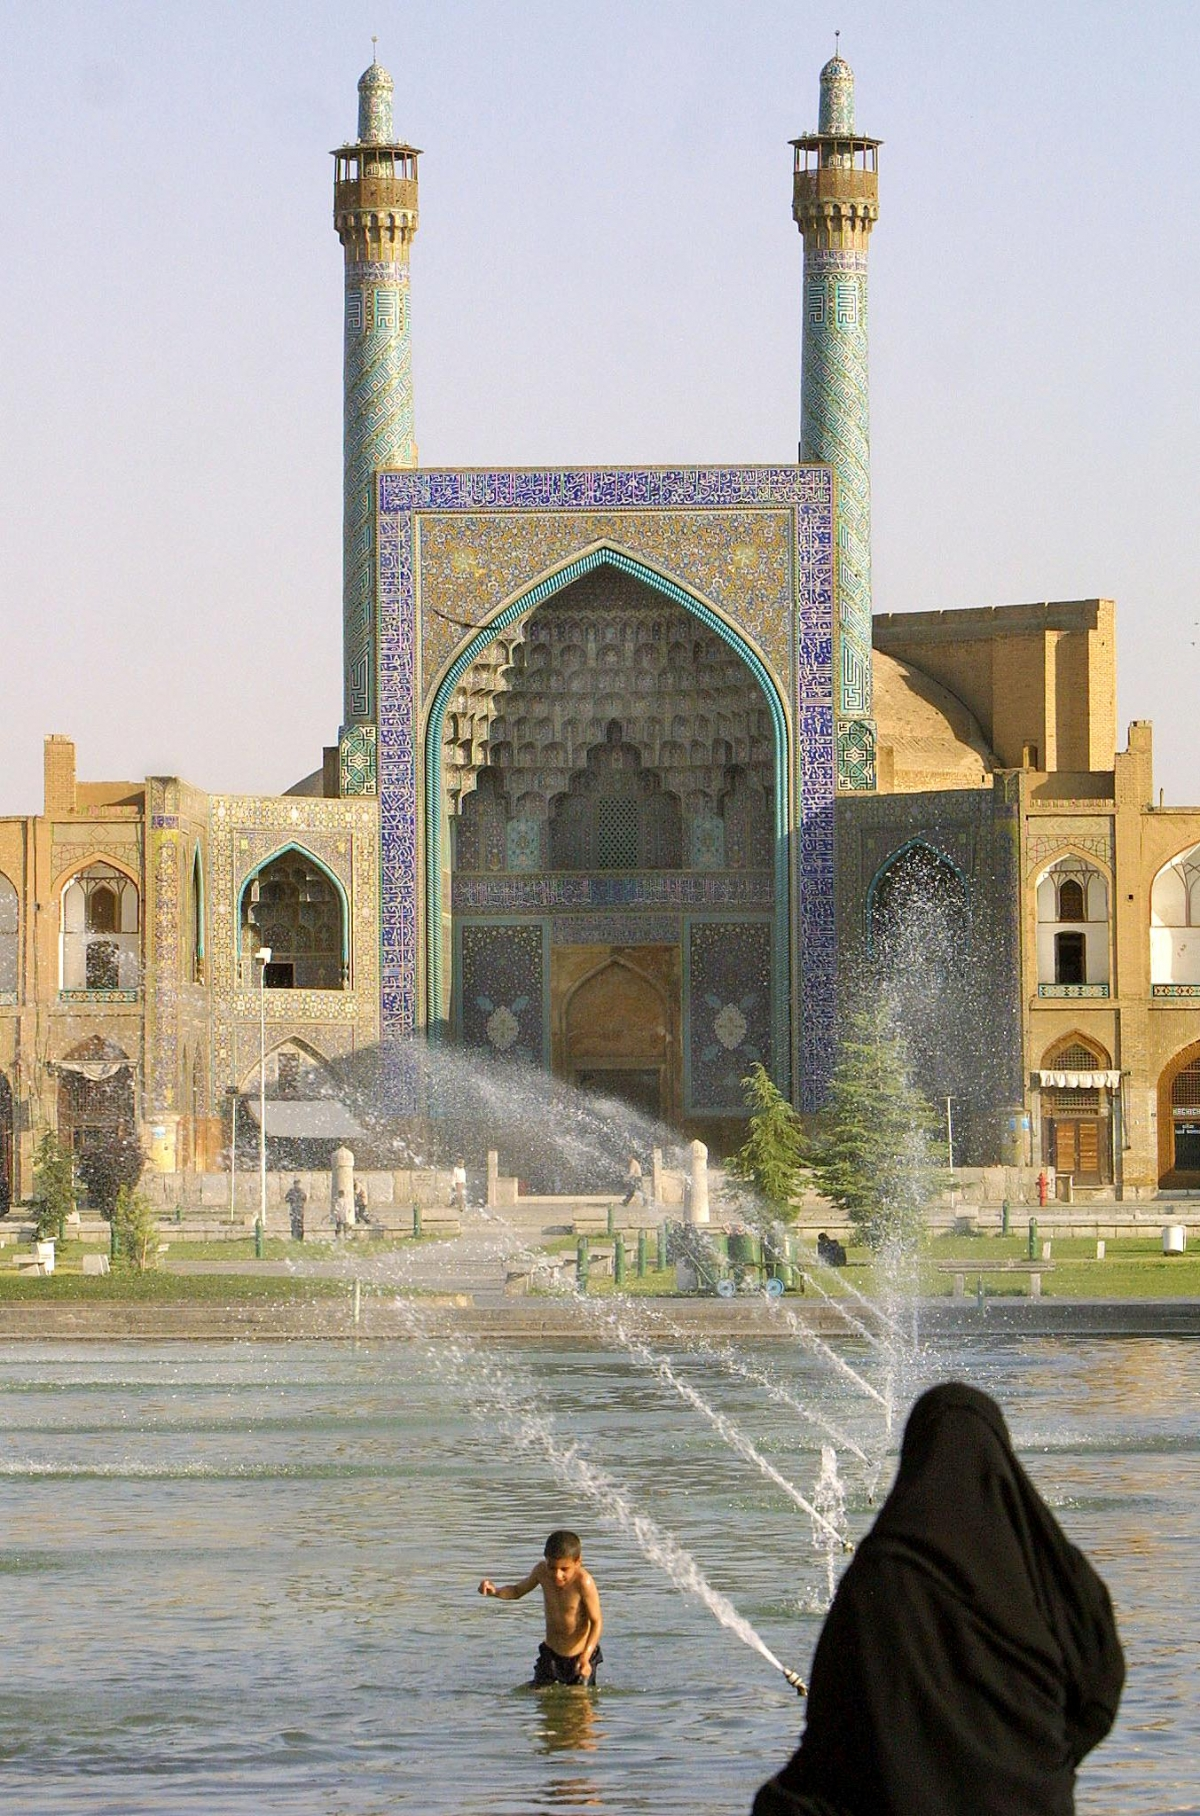 An Iranian woman looks at a boy swiming in the pool of Imam square (royal square) as the historic Imam mosque built in 1638 is seen in the background in Isfahan